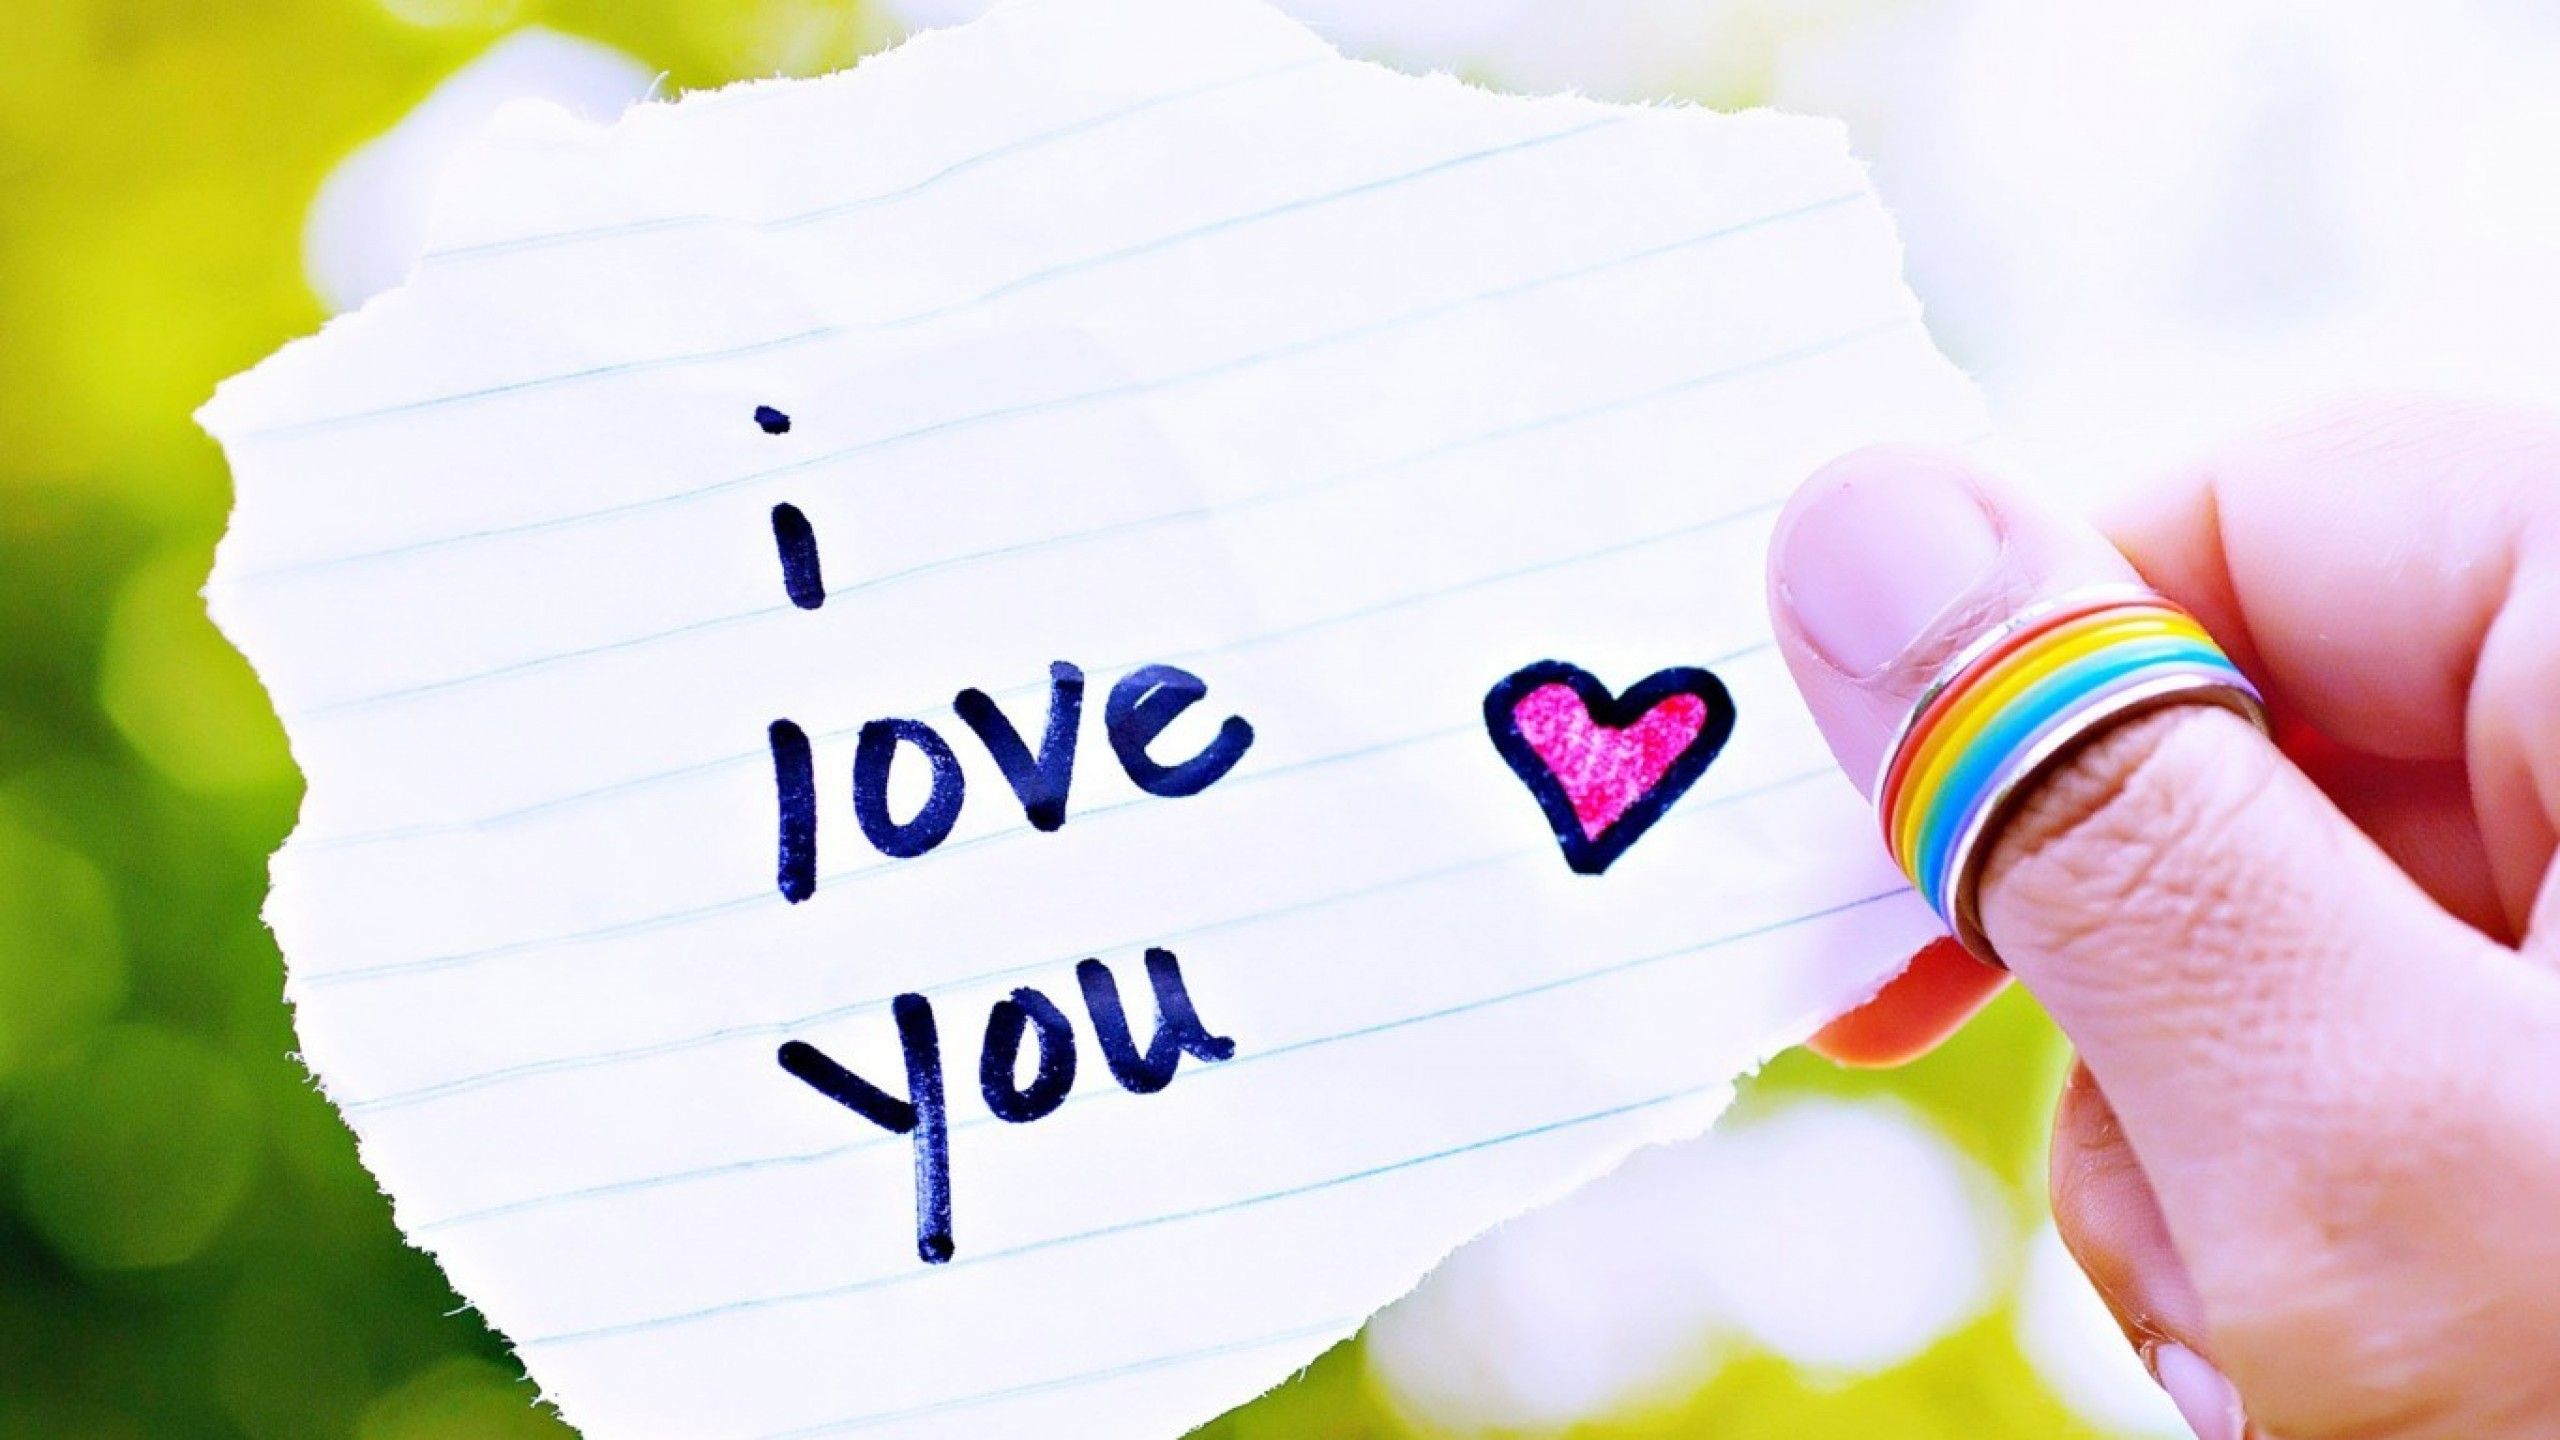 I Love You Images Wallpapers Propose I Love You 35178 Hd